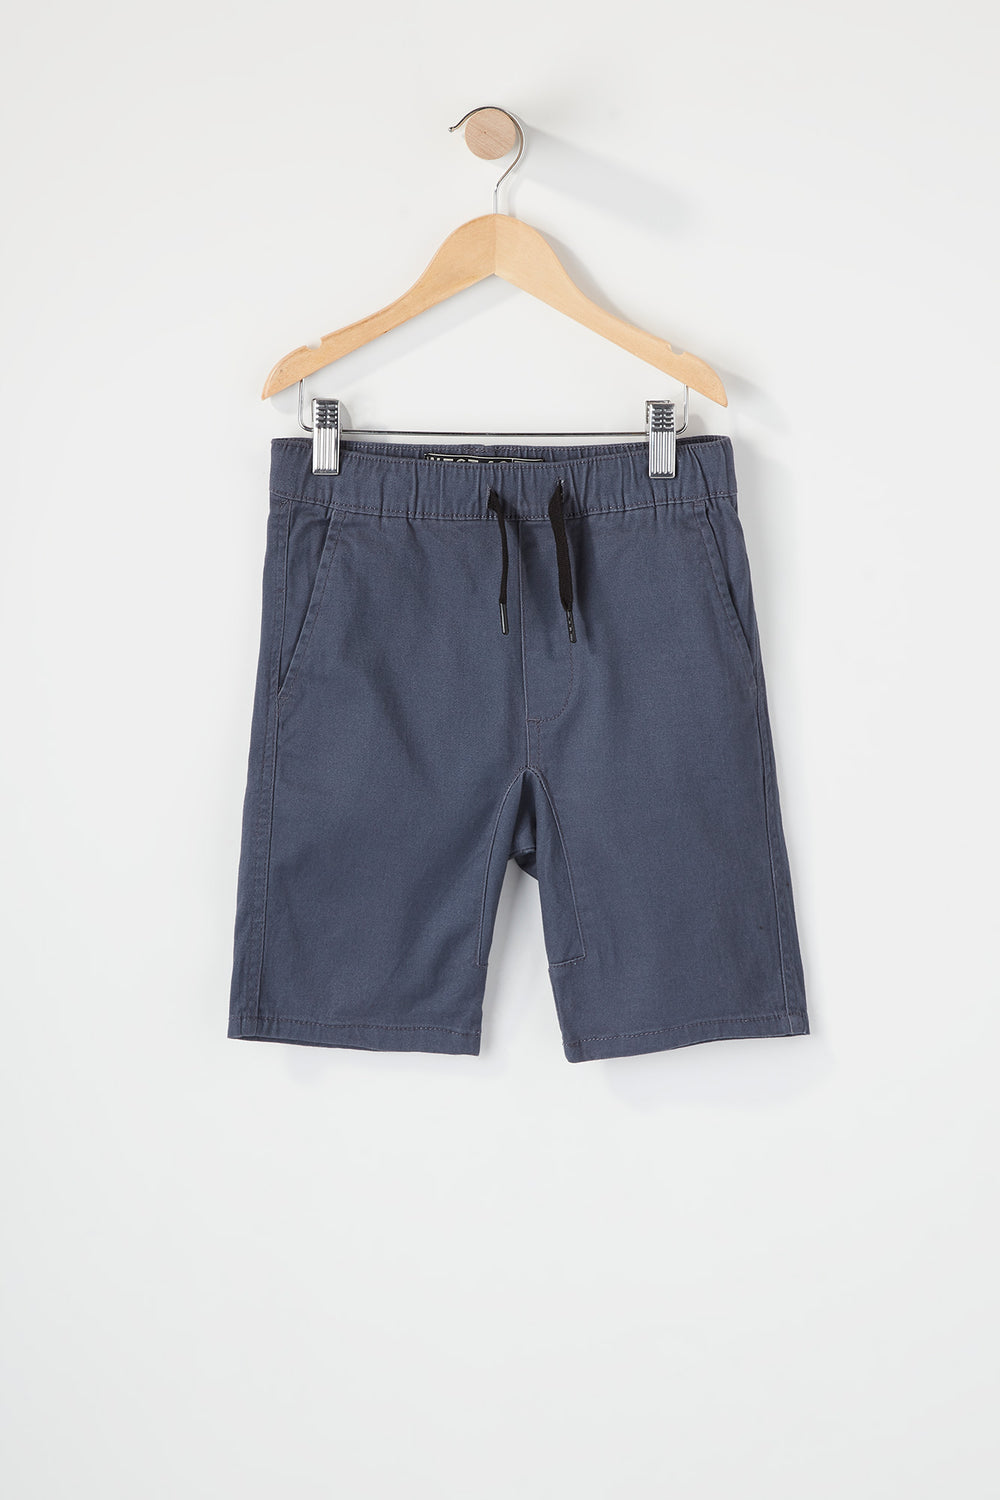 West49 Boys Jogger Short Silver